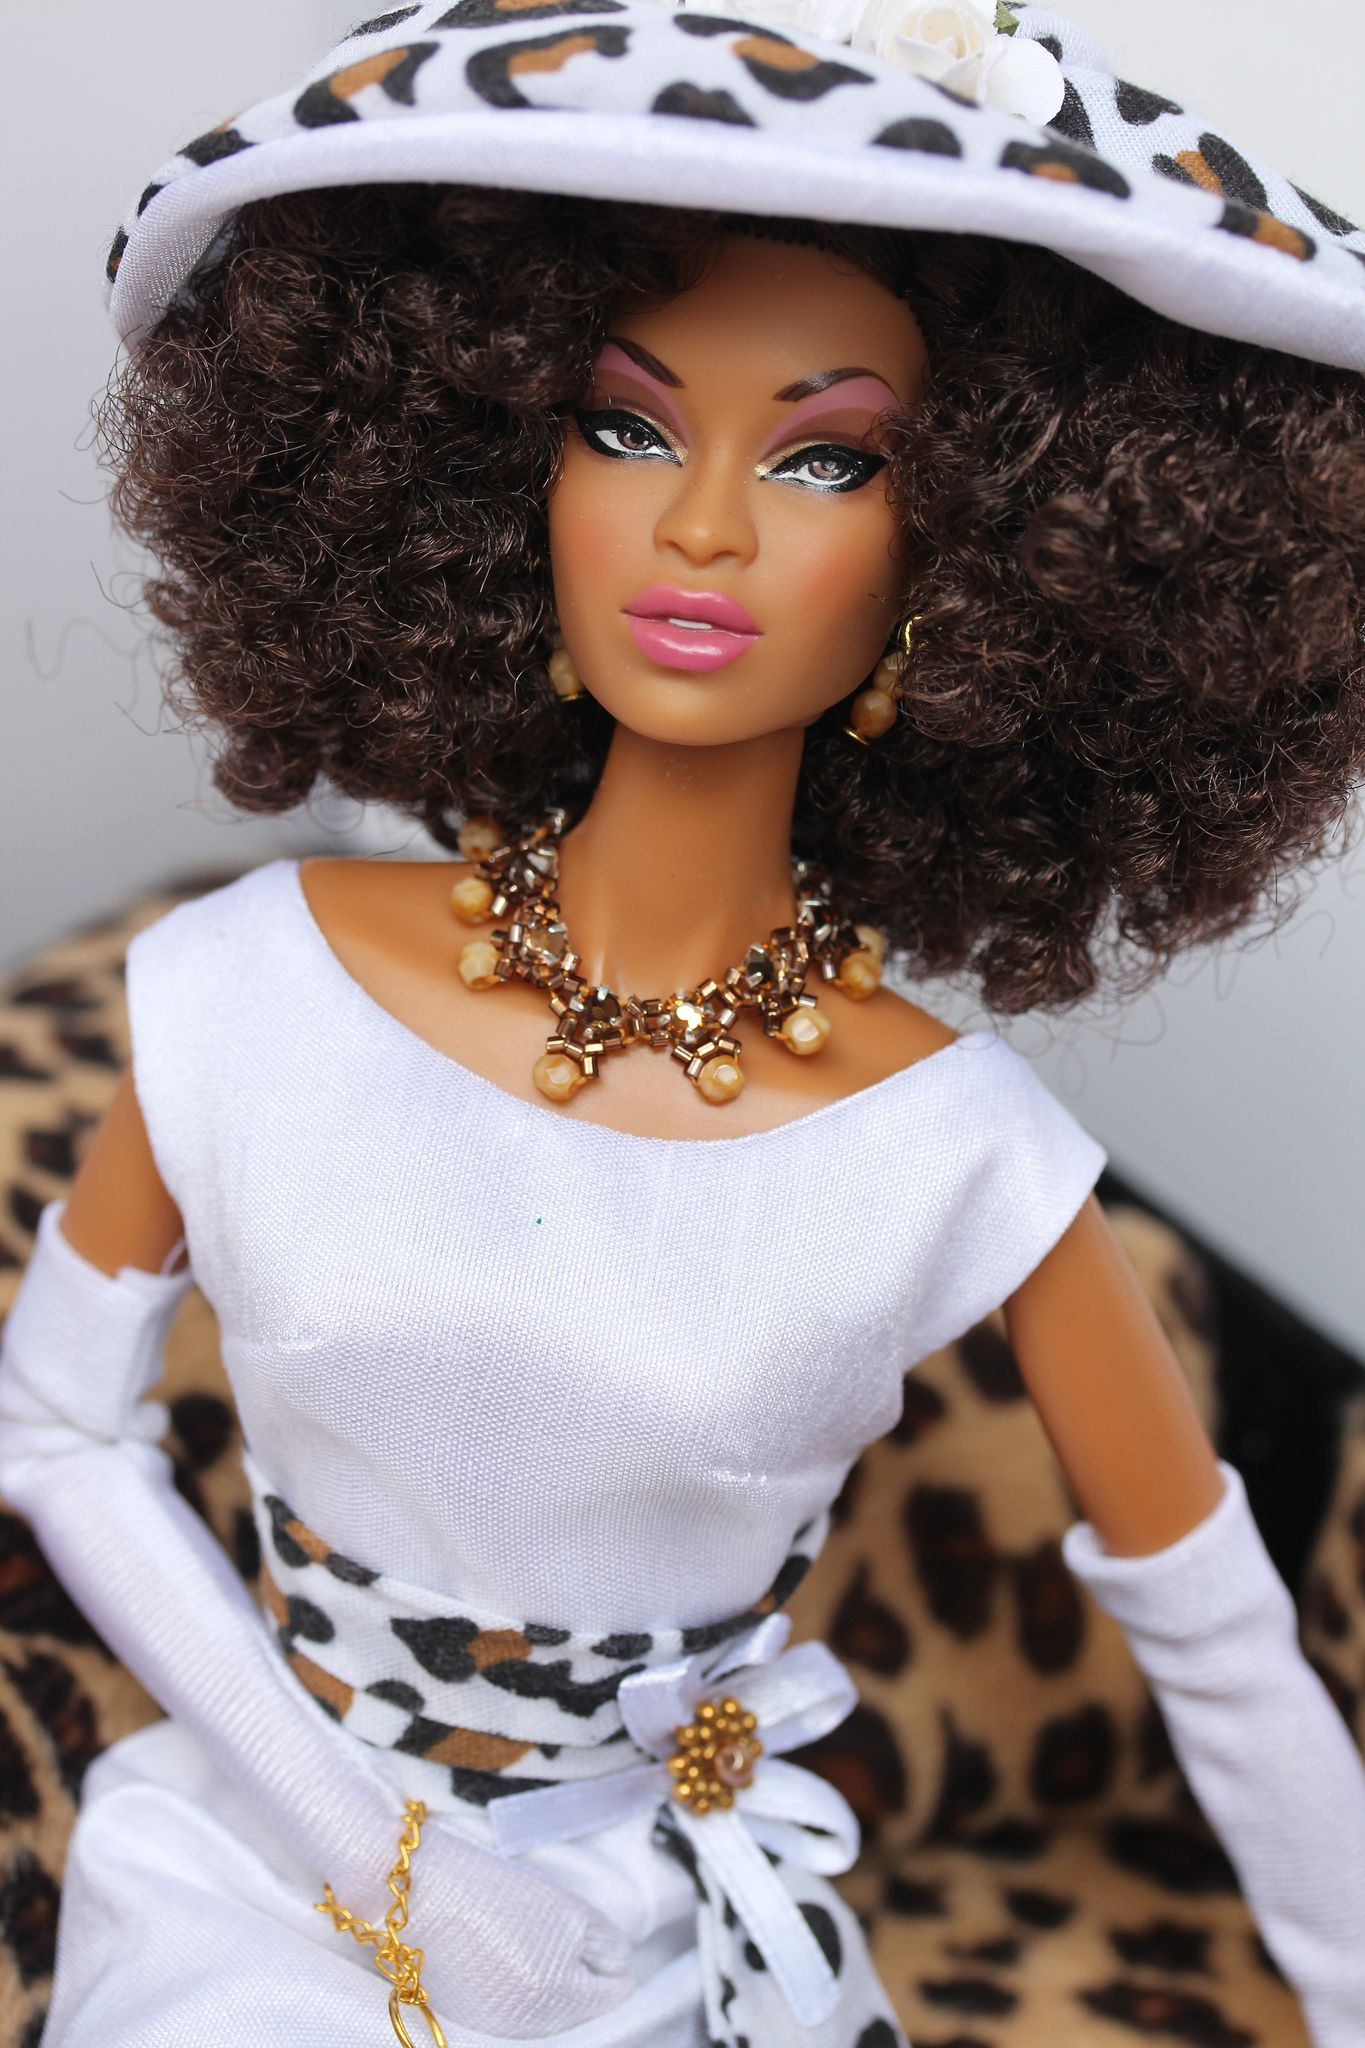 Pin by Tooba Naseer on anime in 2020 | Beautiful barbie